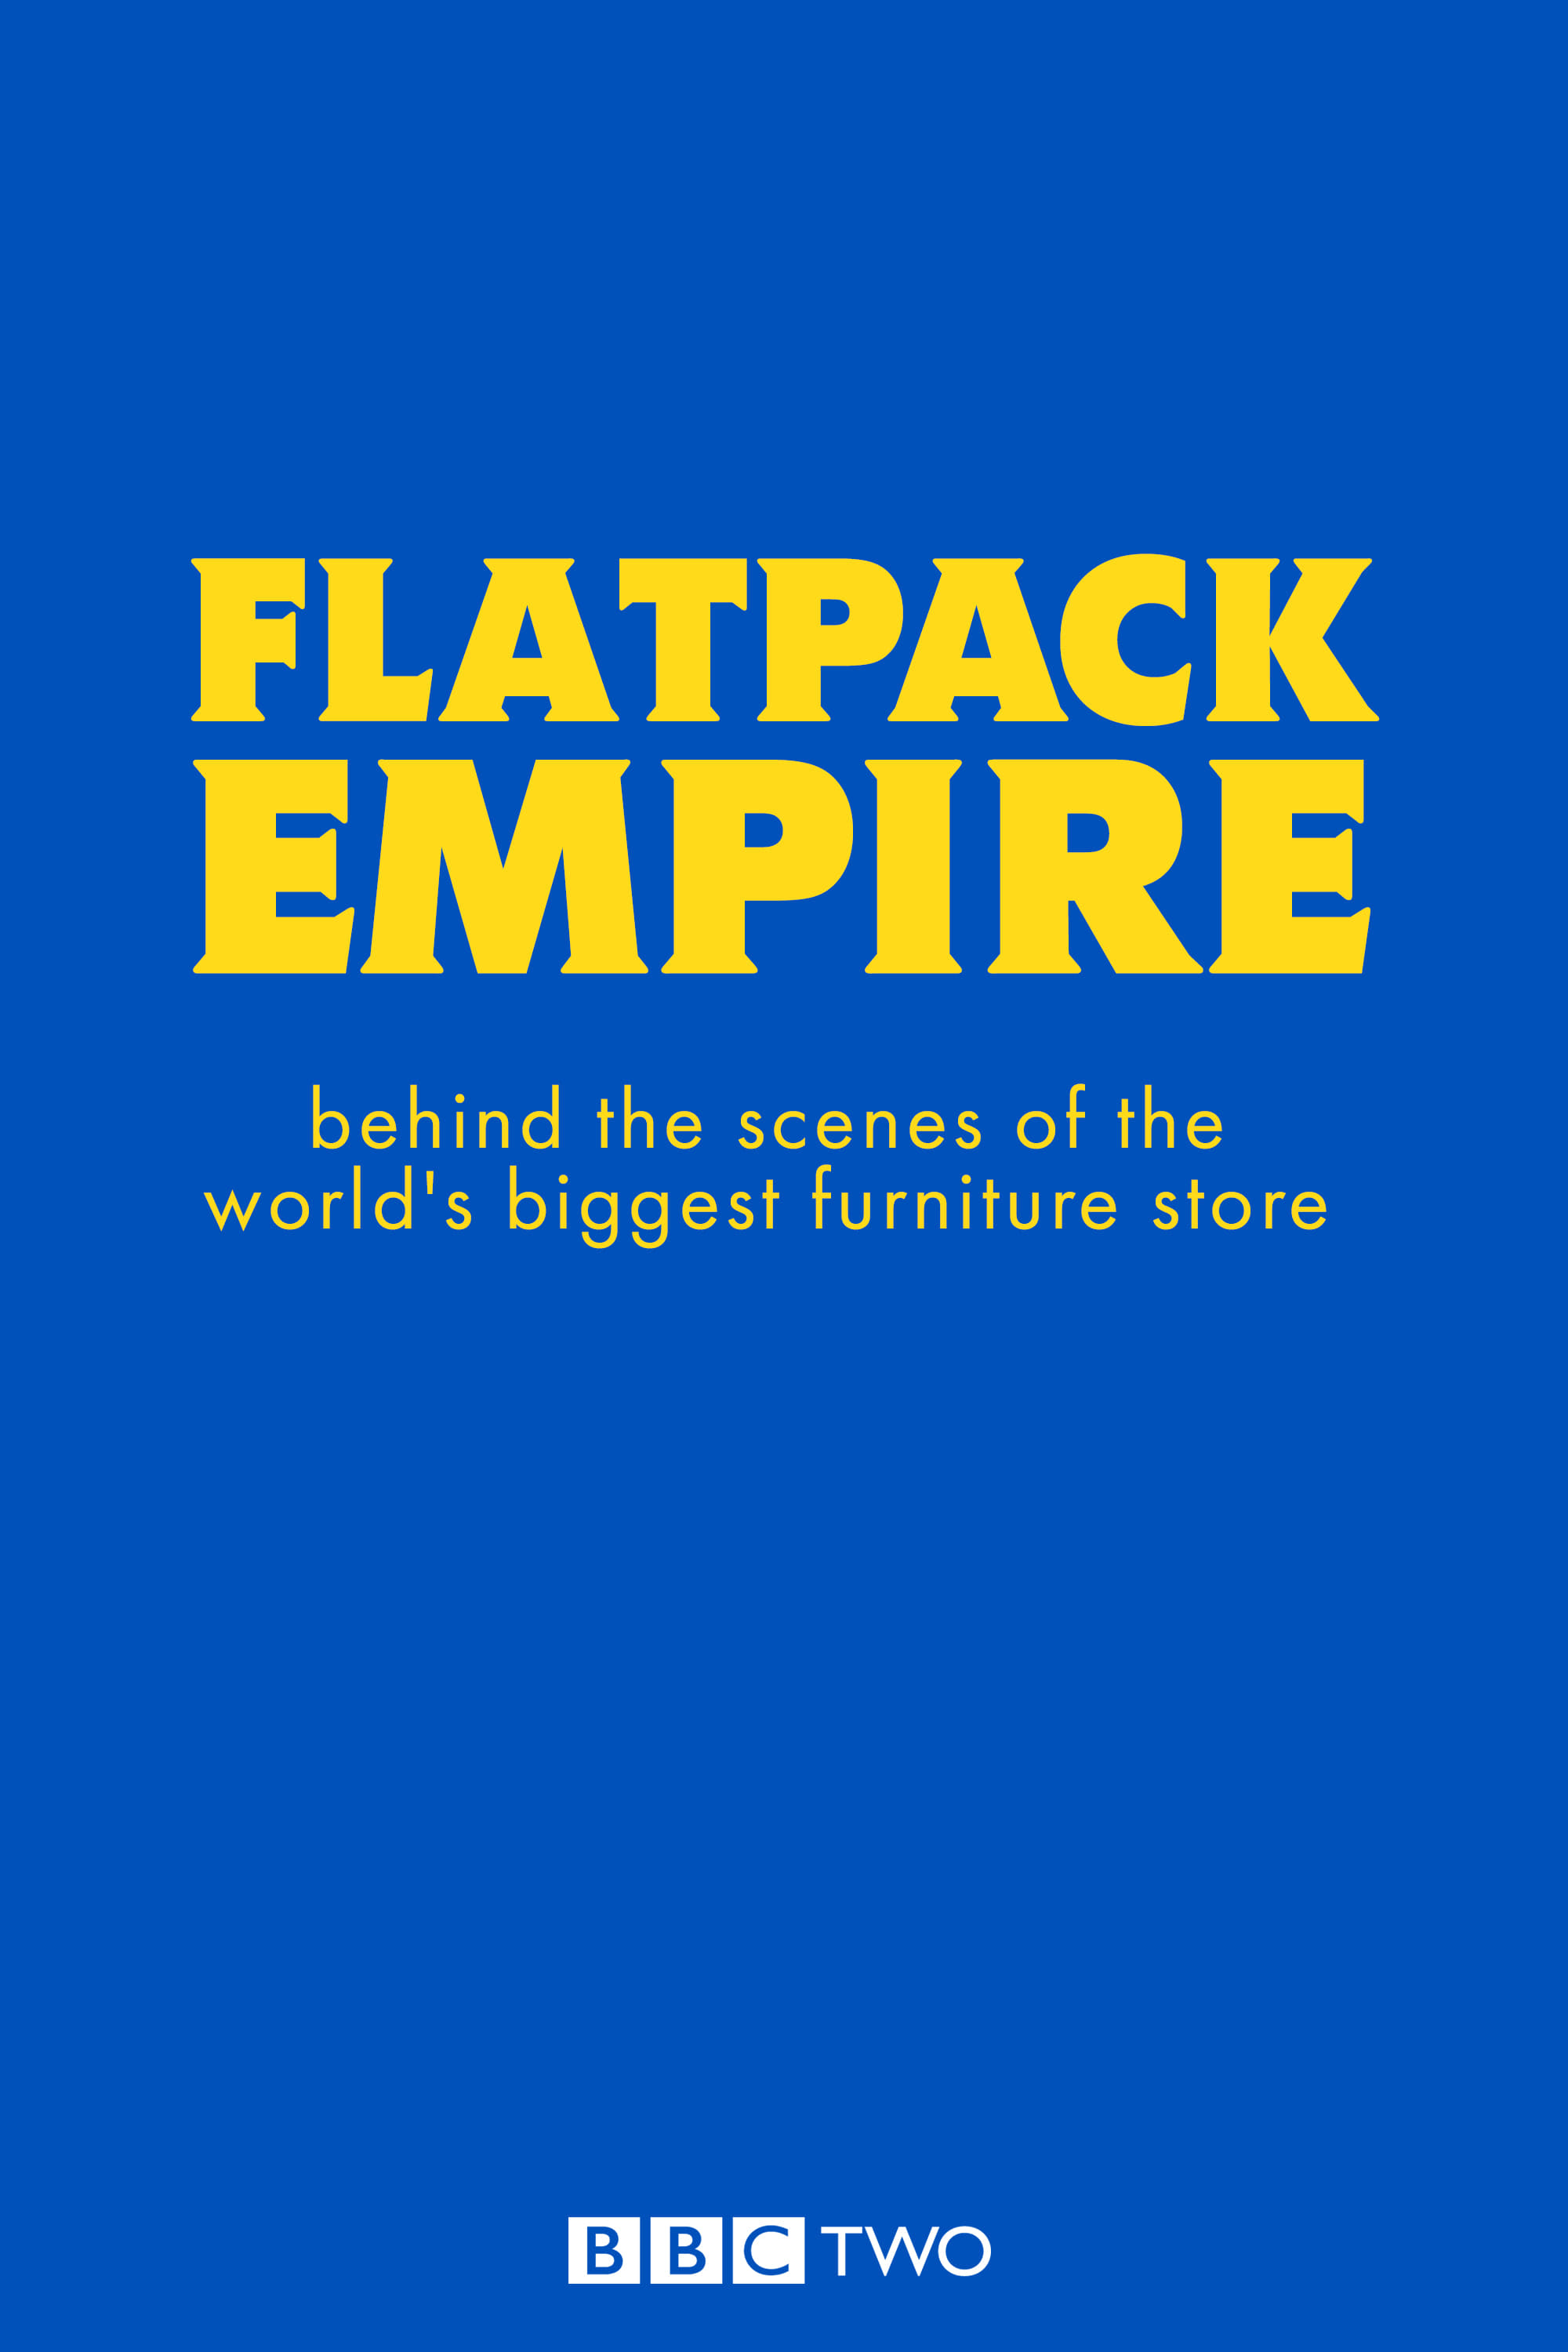 Flatpack Empire (2018)